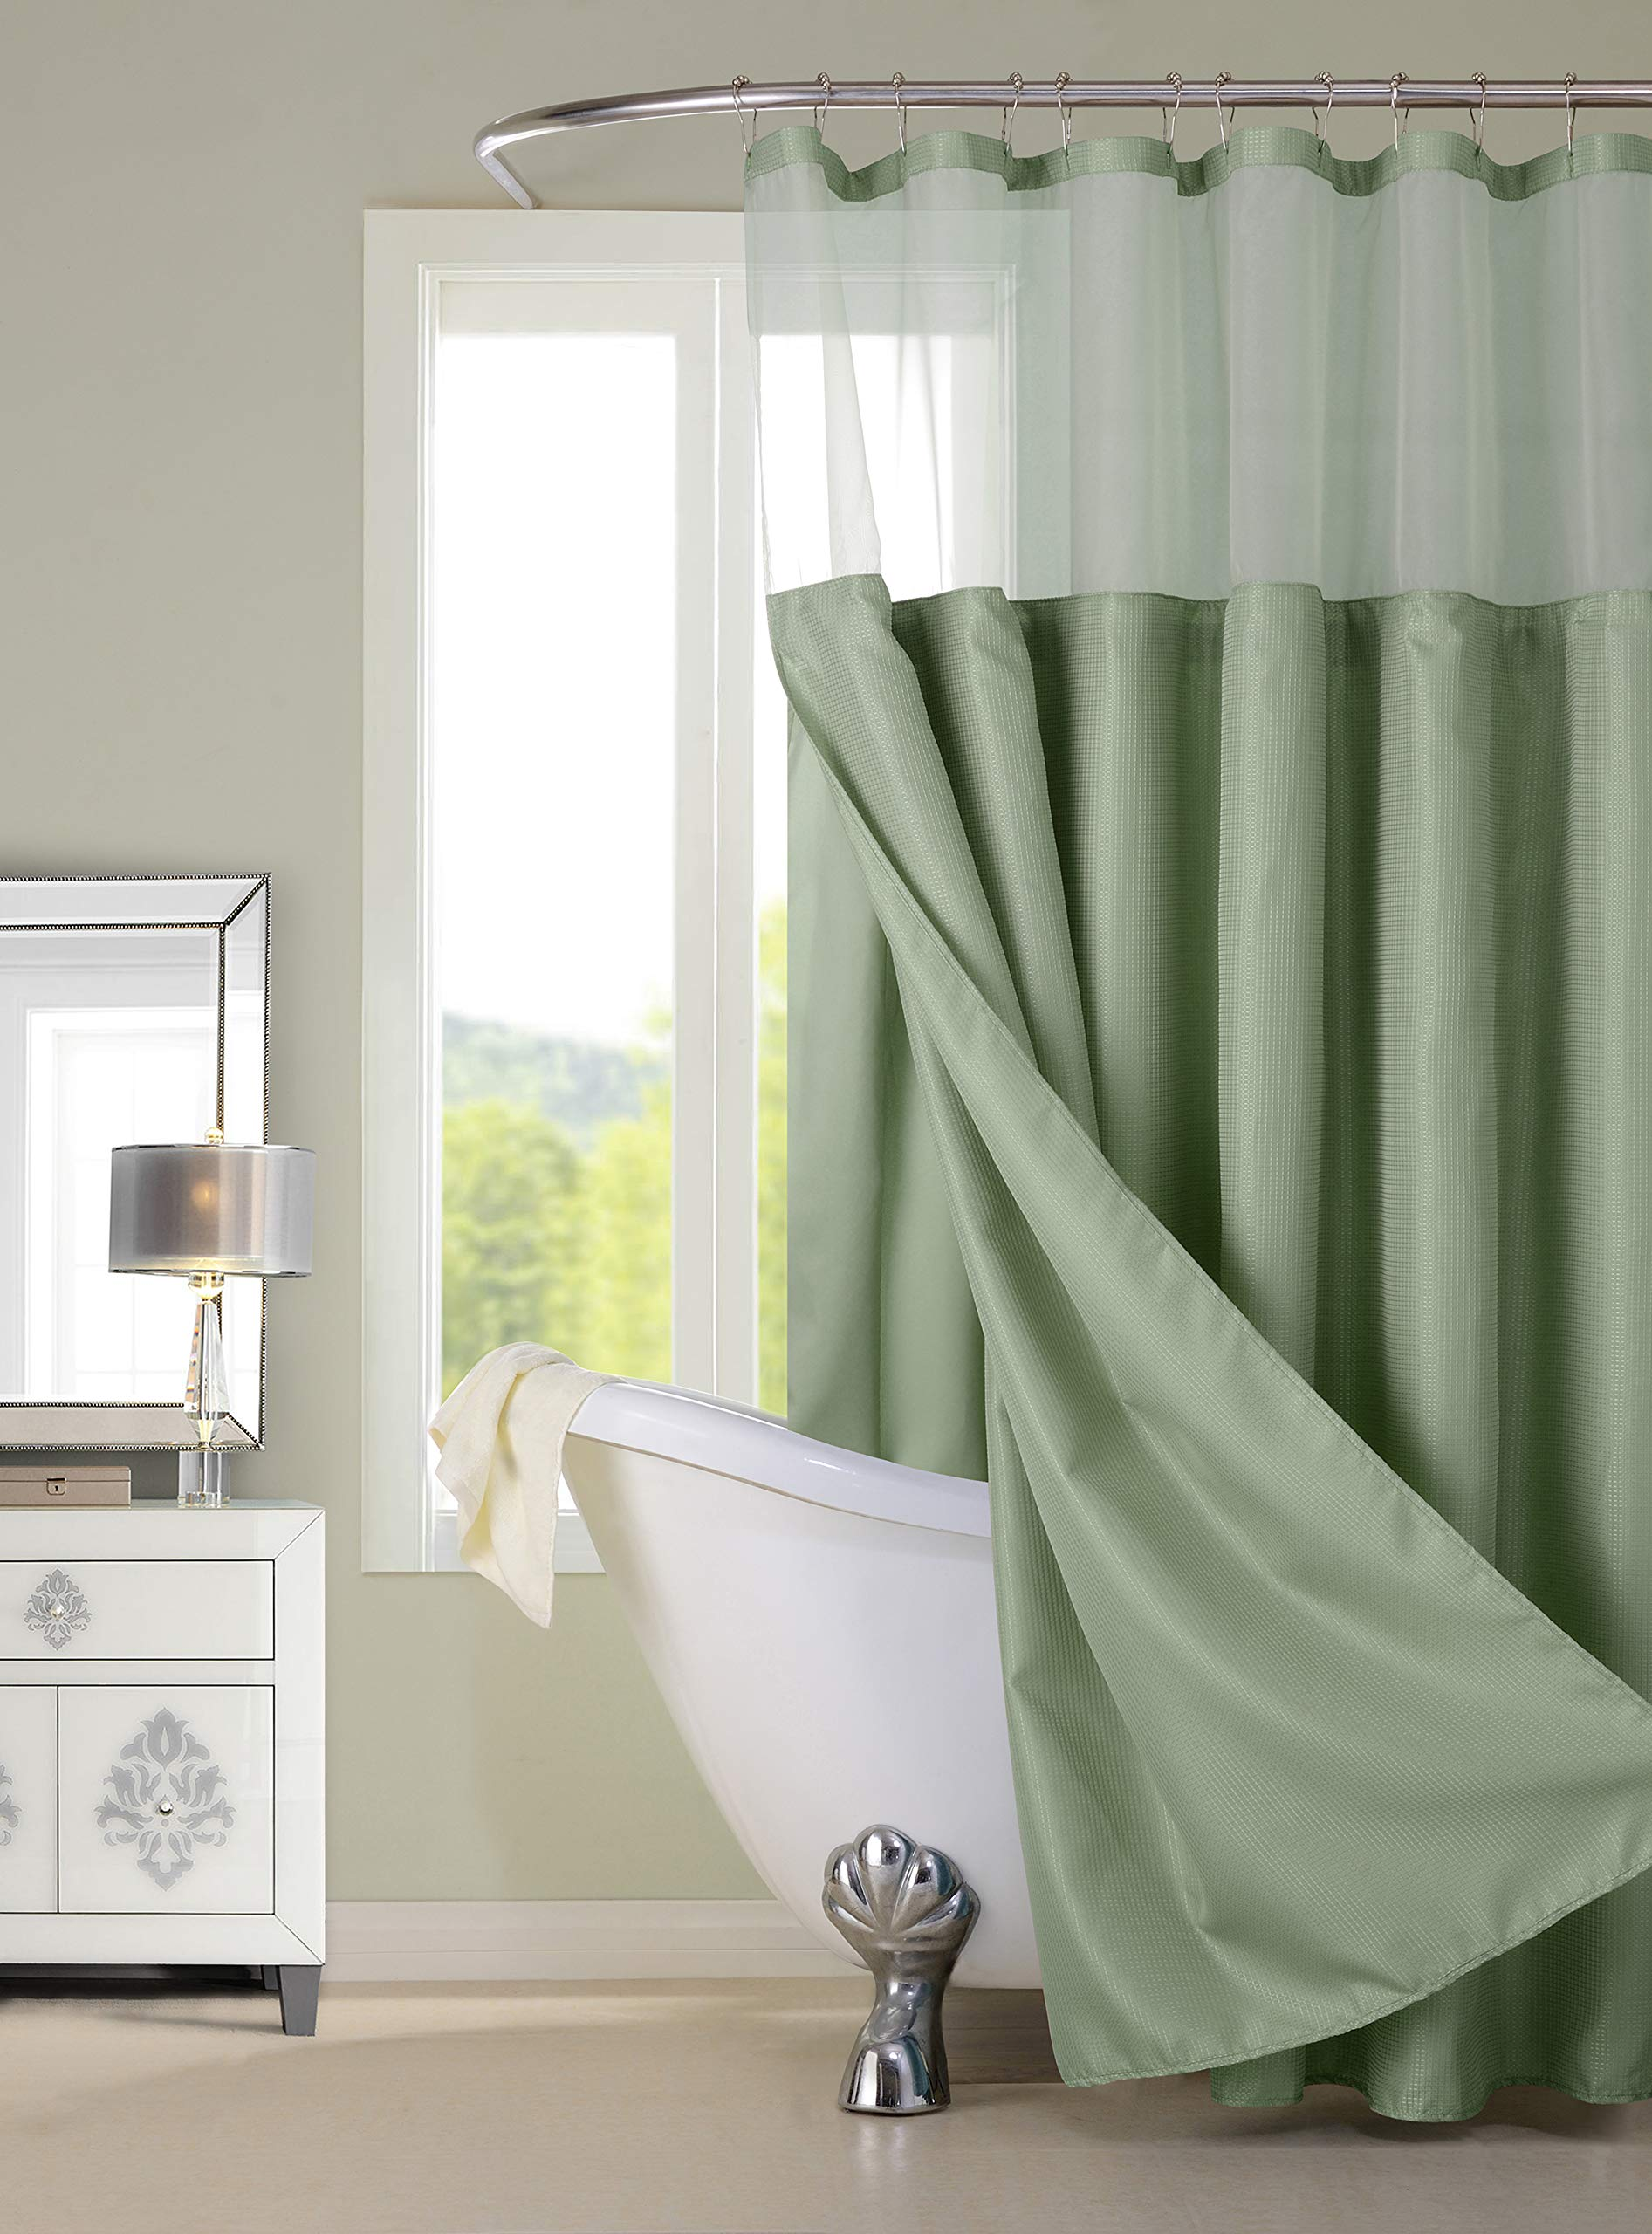 Dainty Home CSCDLSA Complete Waffle Shower Curtain with Detachable Liner, 70x72'', sage